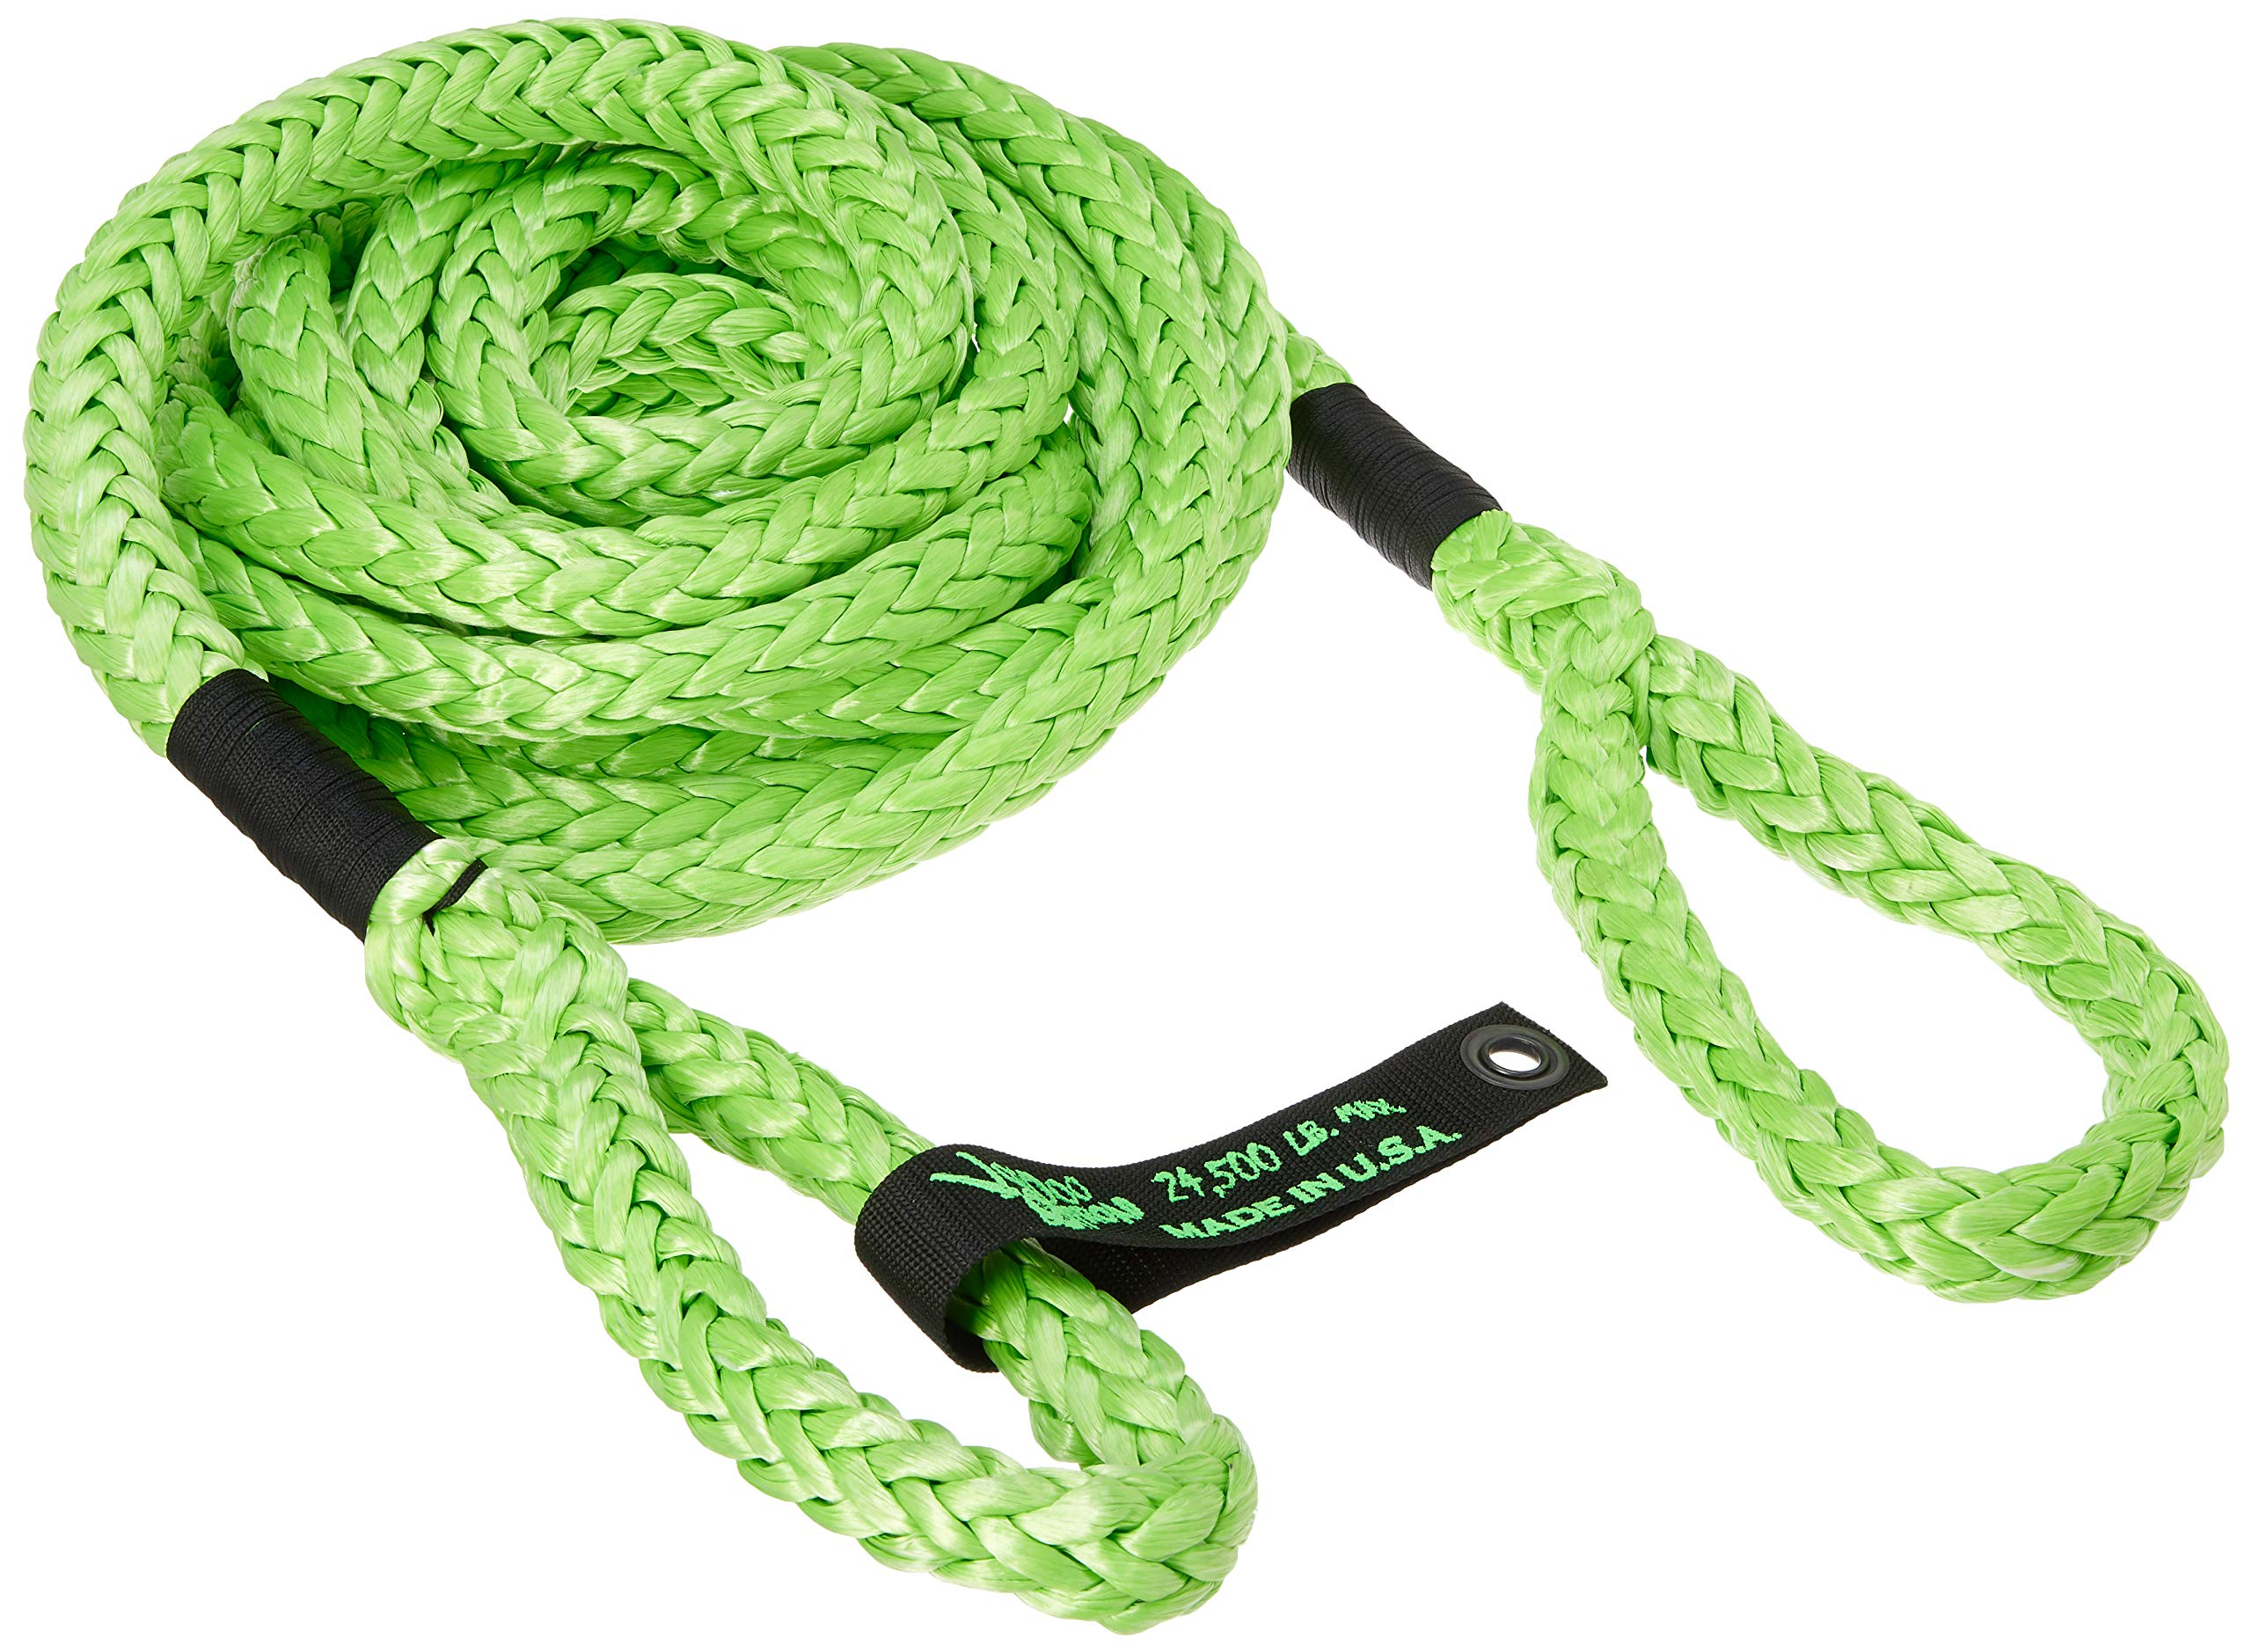 VooDoo Industries 1300009 Recovery Rope by VooDoo Industries